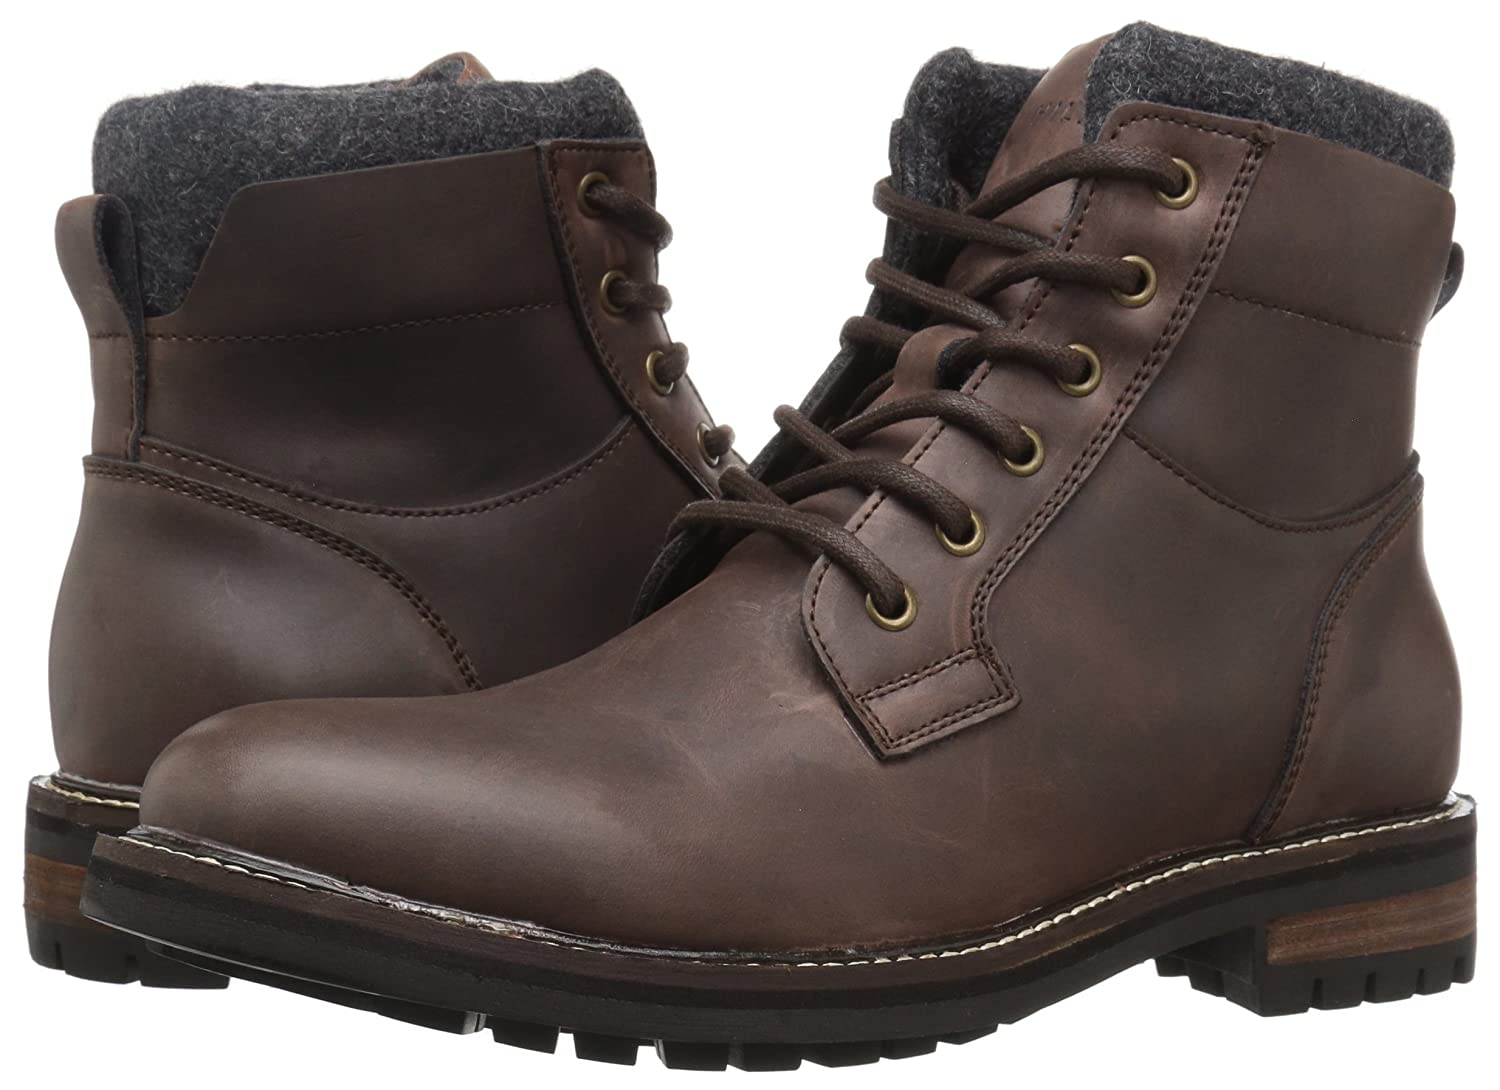 9fe4c4de0a76f Tommy Hilfiger Men s Hamden Leather Dark Brown Ankle-High Leather Boot -  12M  Amazon.co.uk  Shoes   Bags